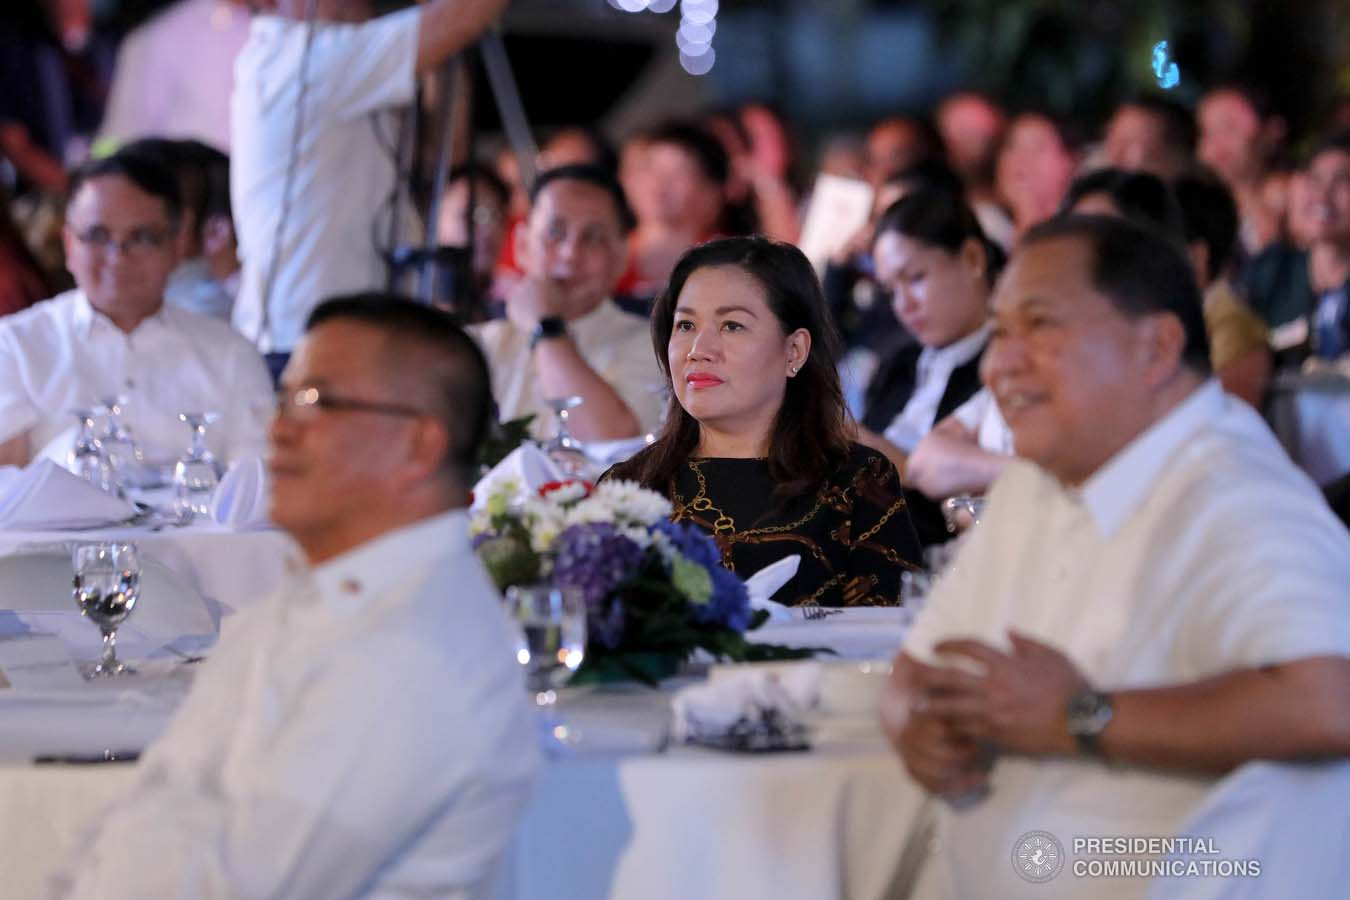 President Rodrigo Roa Duterte's partner Cielito Avanceña listens to the President's speech during the Thanksgiving party for the beneficiaries of the killed-in-action (KIA) soldiers and killed-in-police operation (KIPO) personnel under the Comprehensive Social Benefits Program at the Malacañan Palace on December 10, 2019. ALFRED FRIAS/PRESIDENTIAL PHOTO